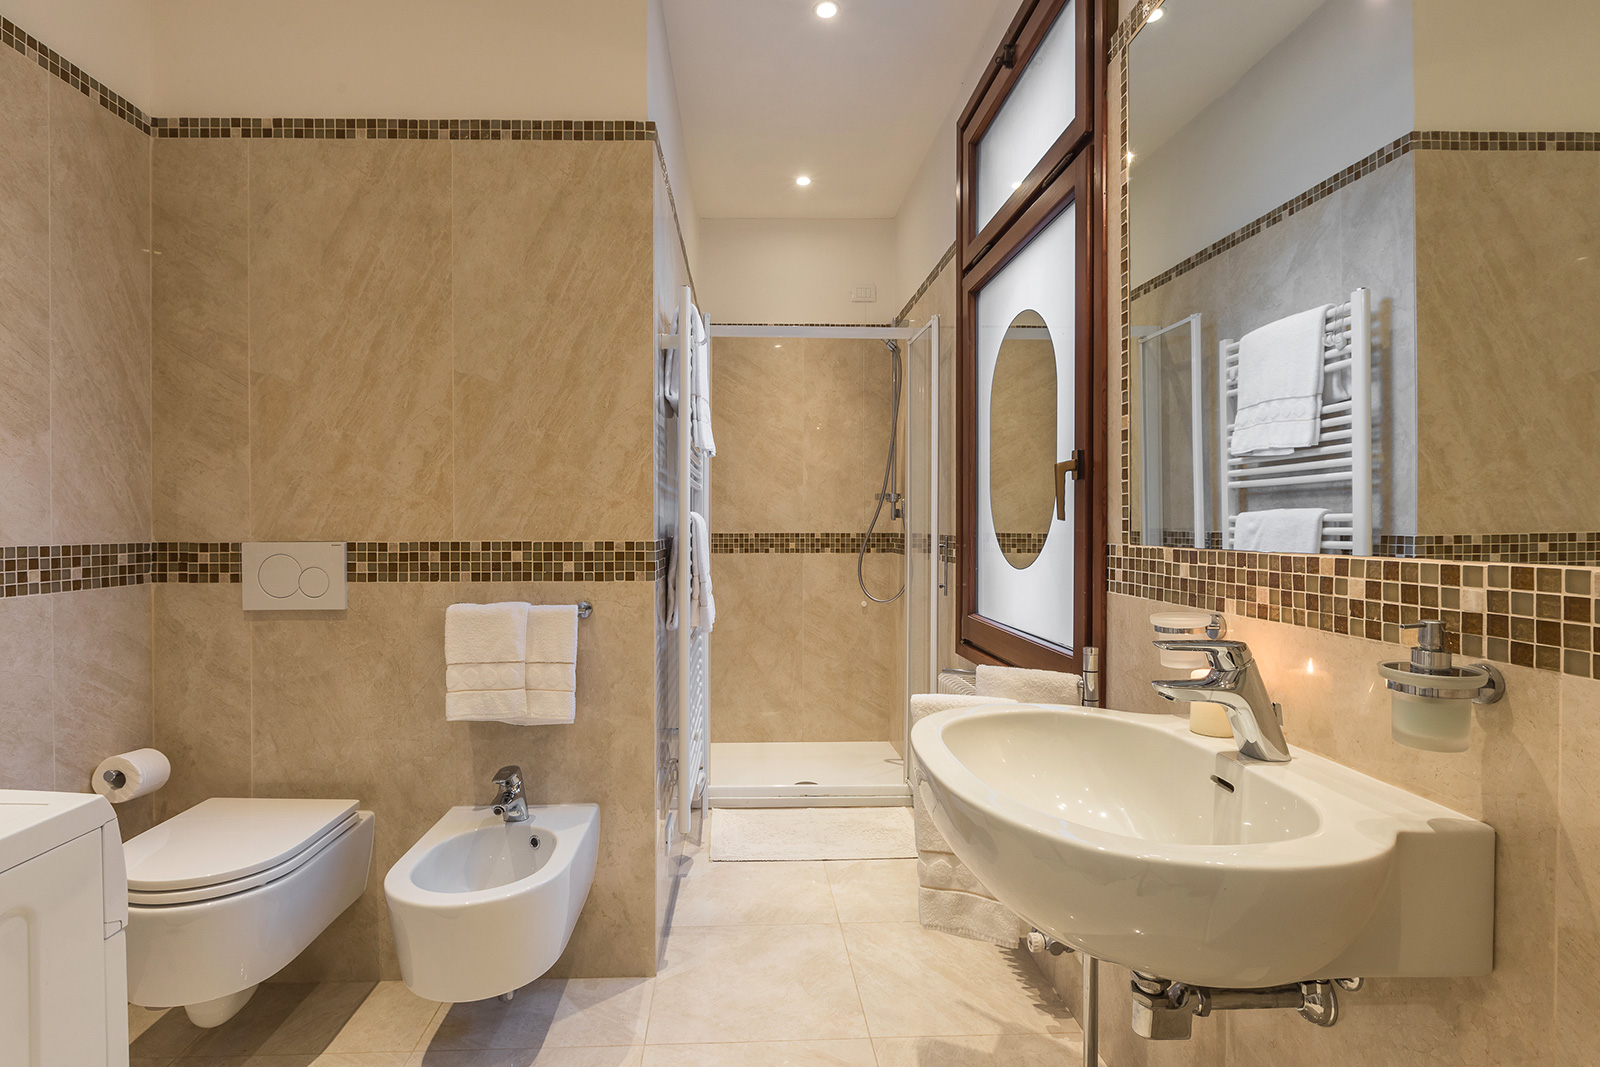 large en-suite bathroom made with marble and mosaic tiles